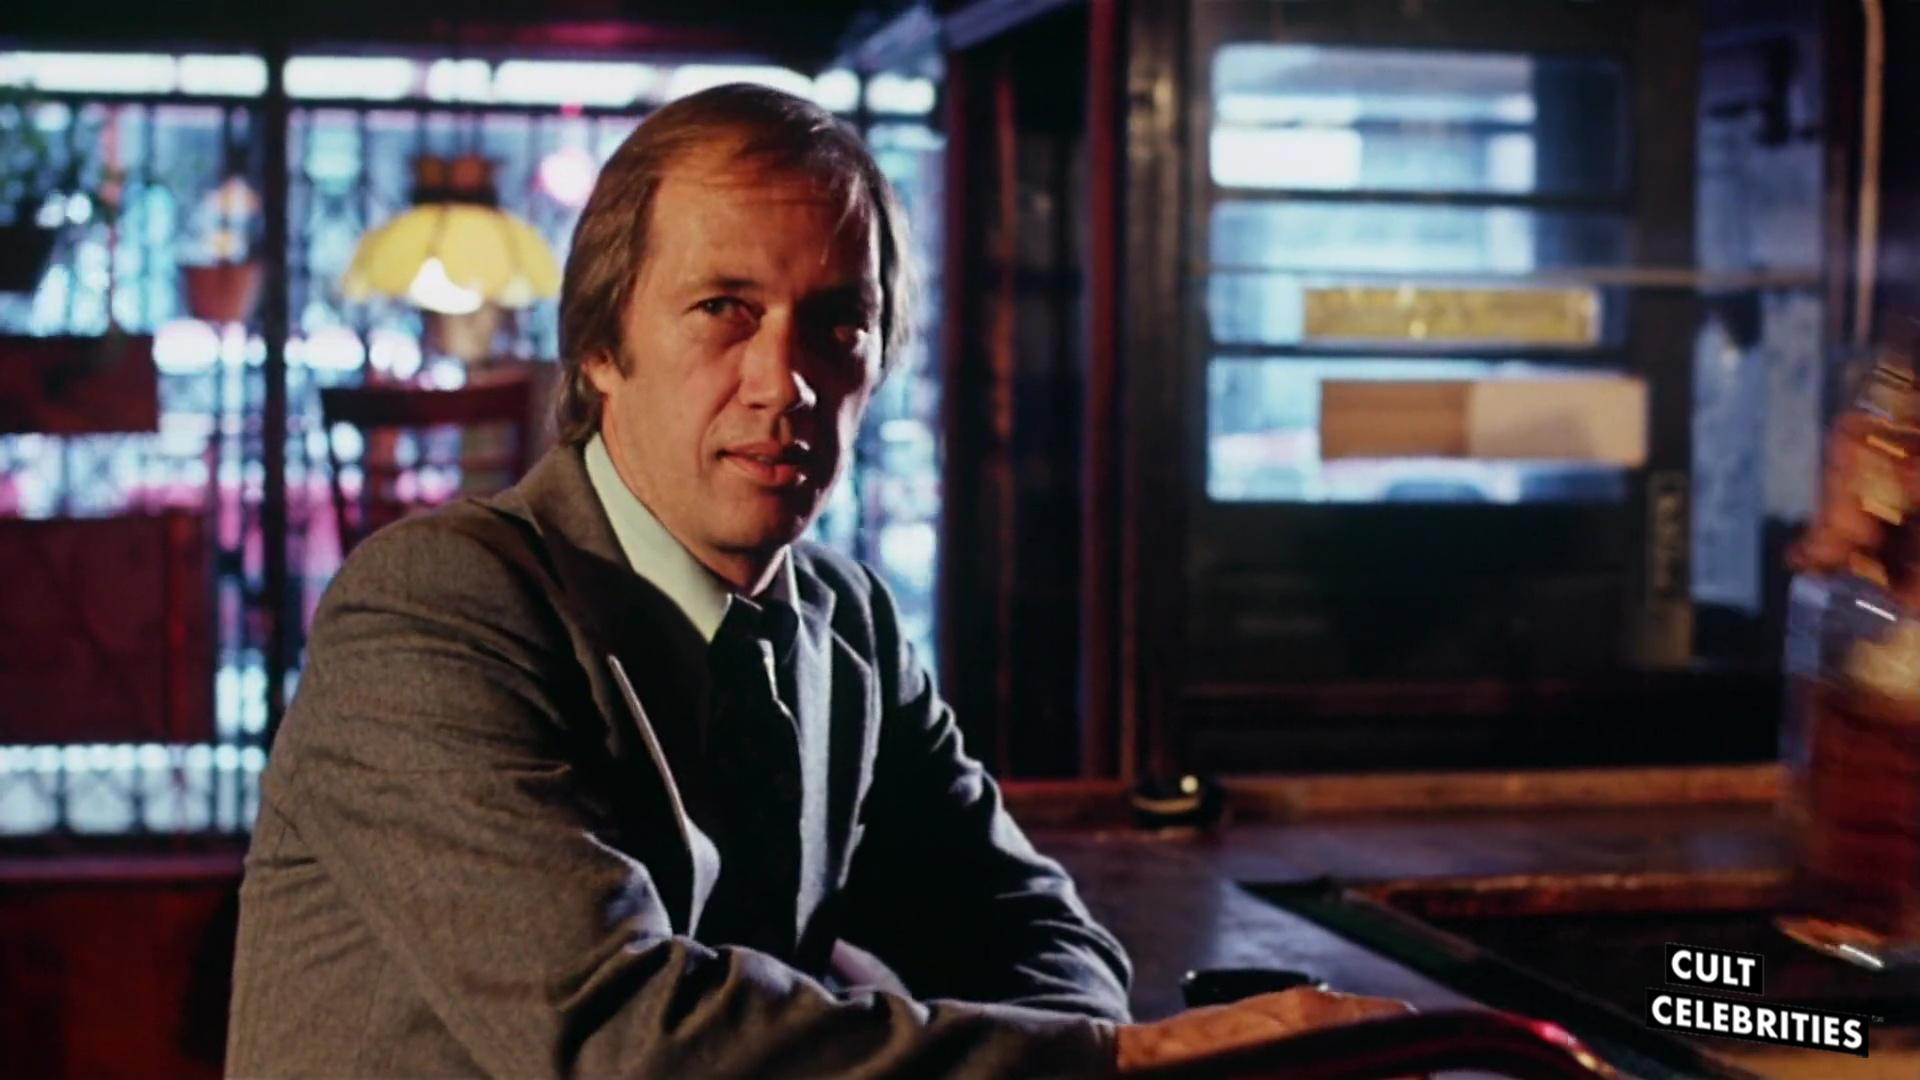 David Carradine in Q